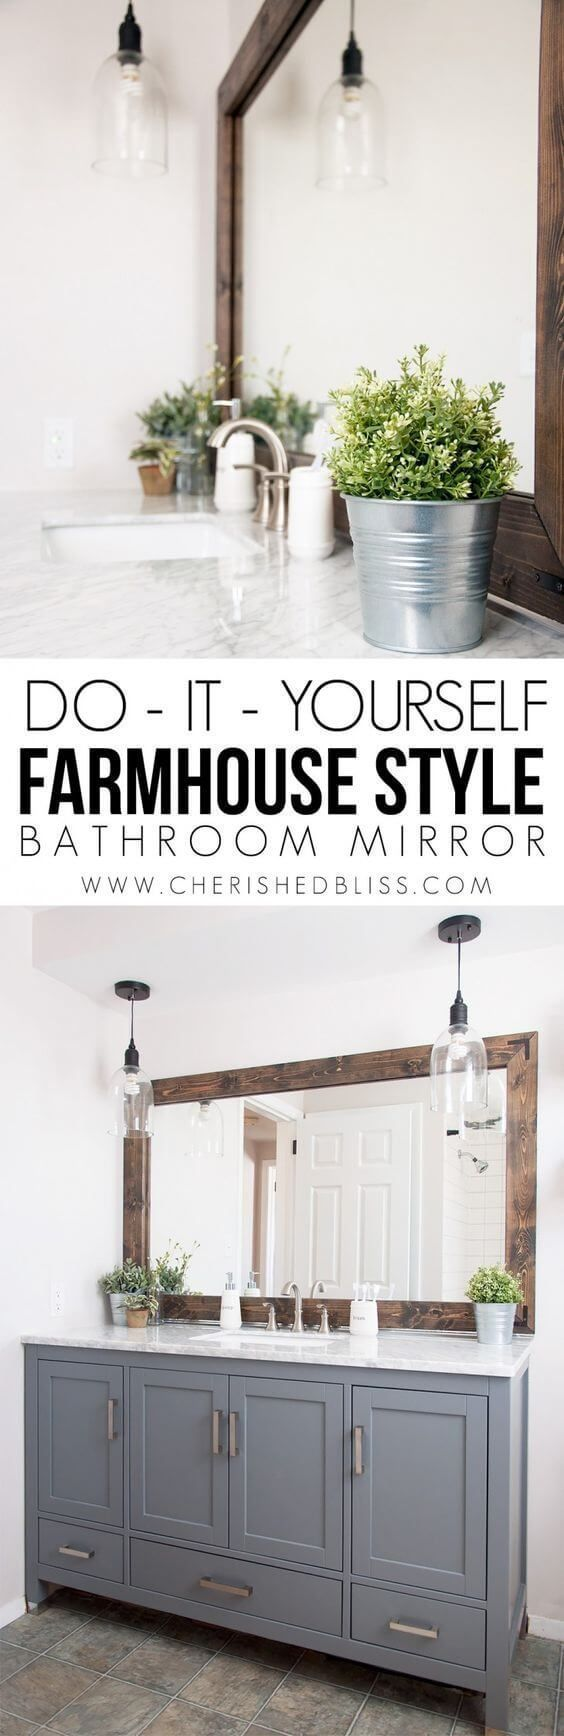 162 best Modern Farmhouse Decor images on Pinterest | Ad home ...